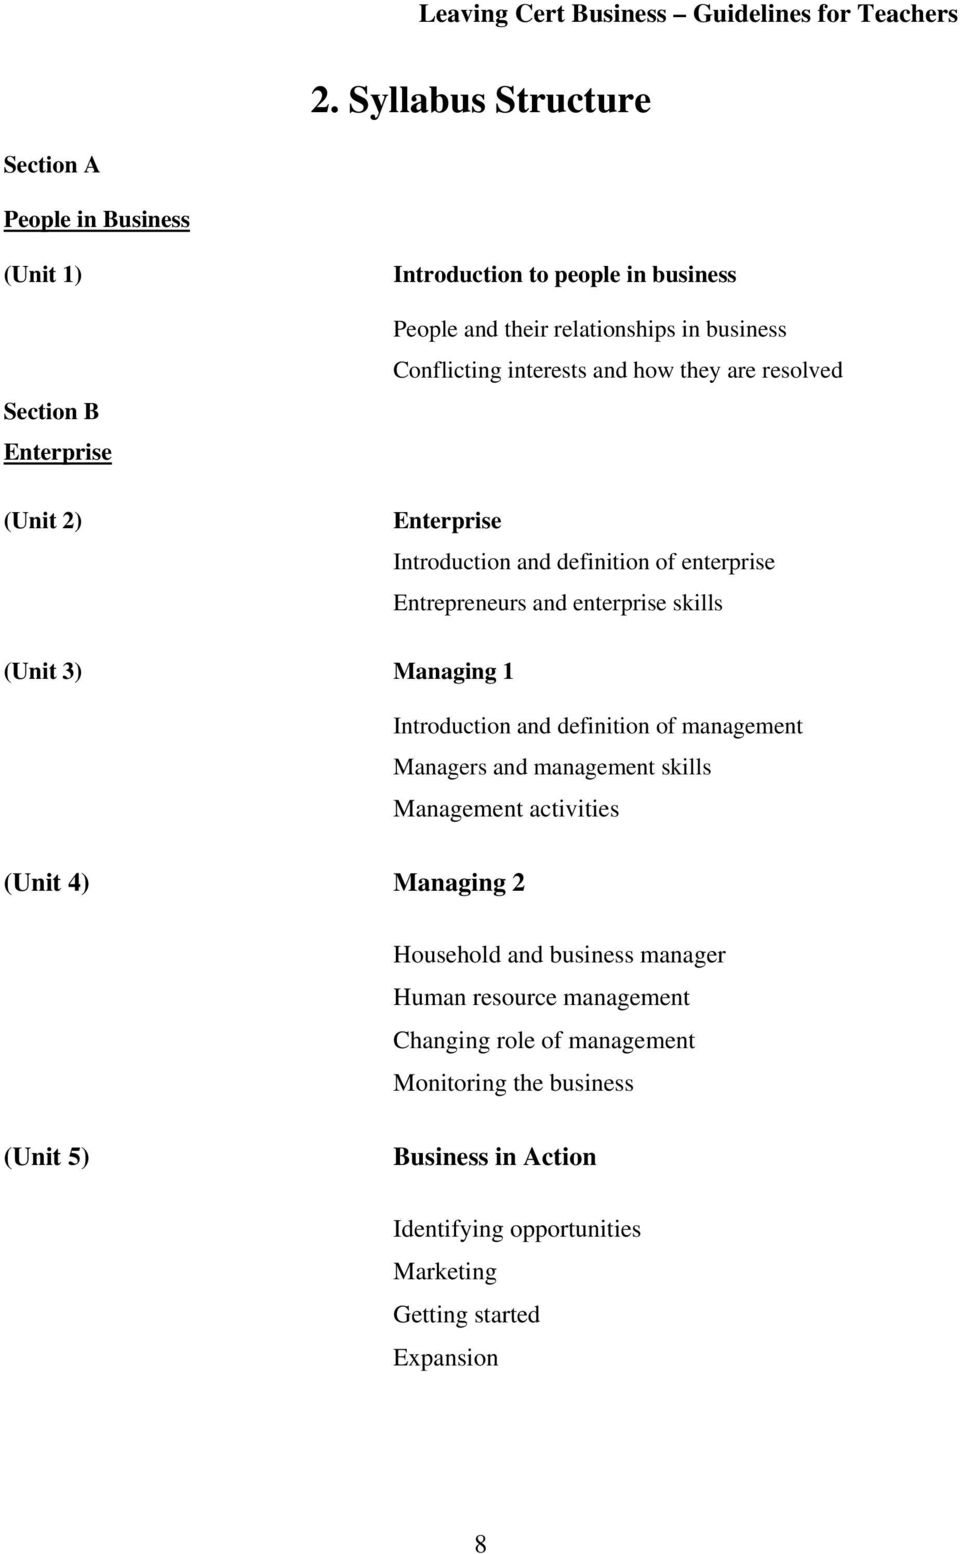 Managing 1 Introduction and definition of management Managers and management skills Management activities (Unit 4) Managing 2 Household and business manager